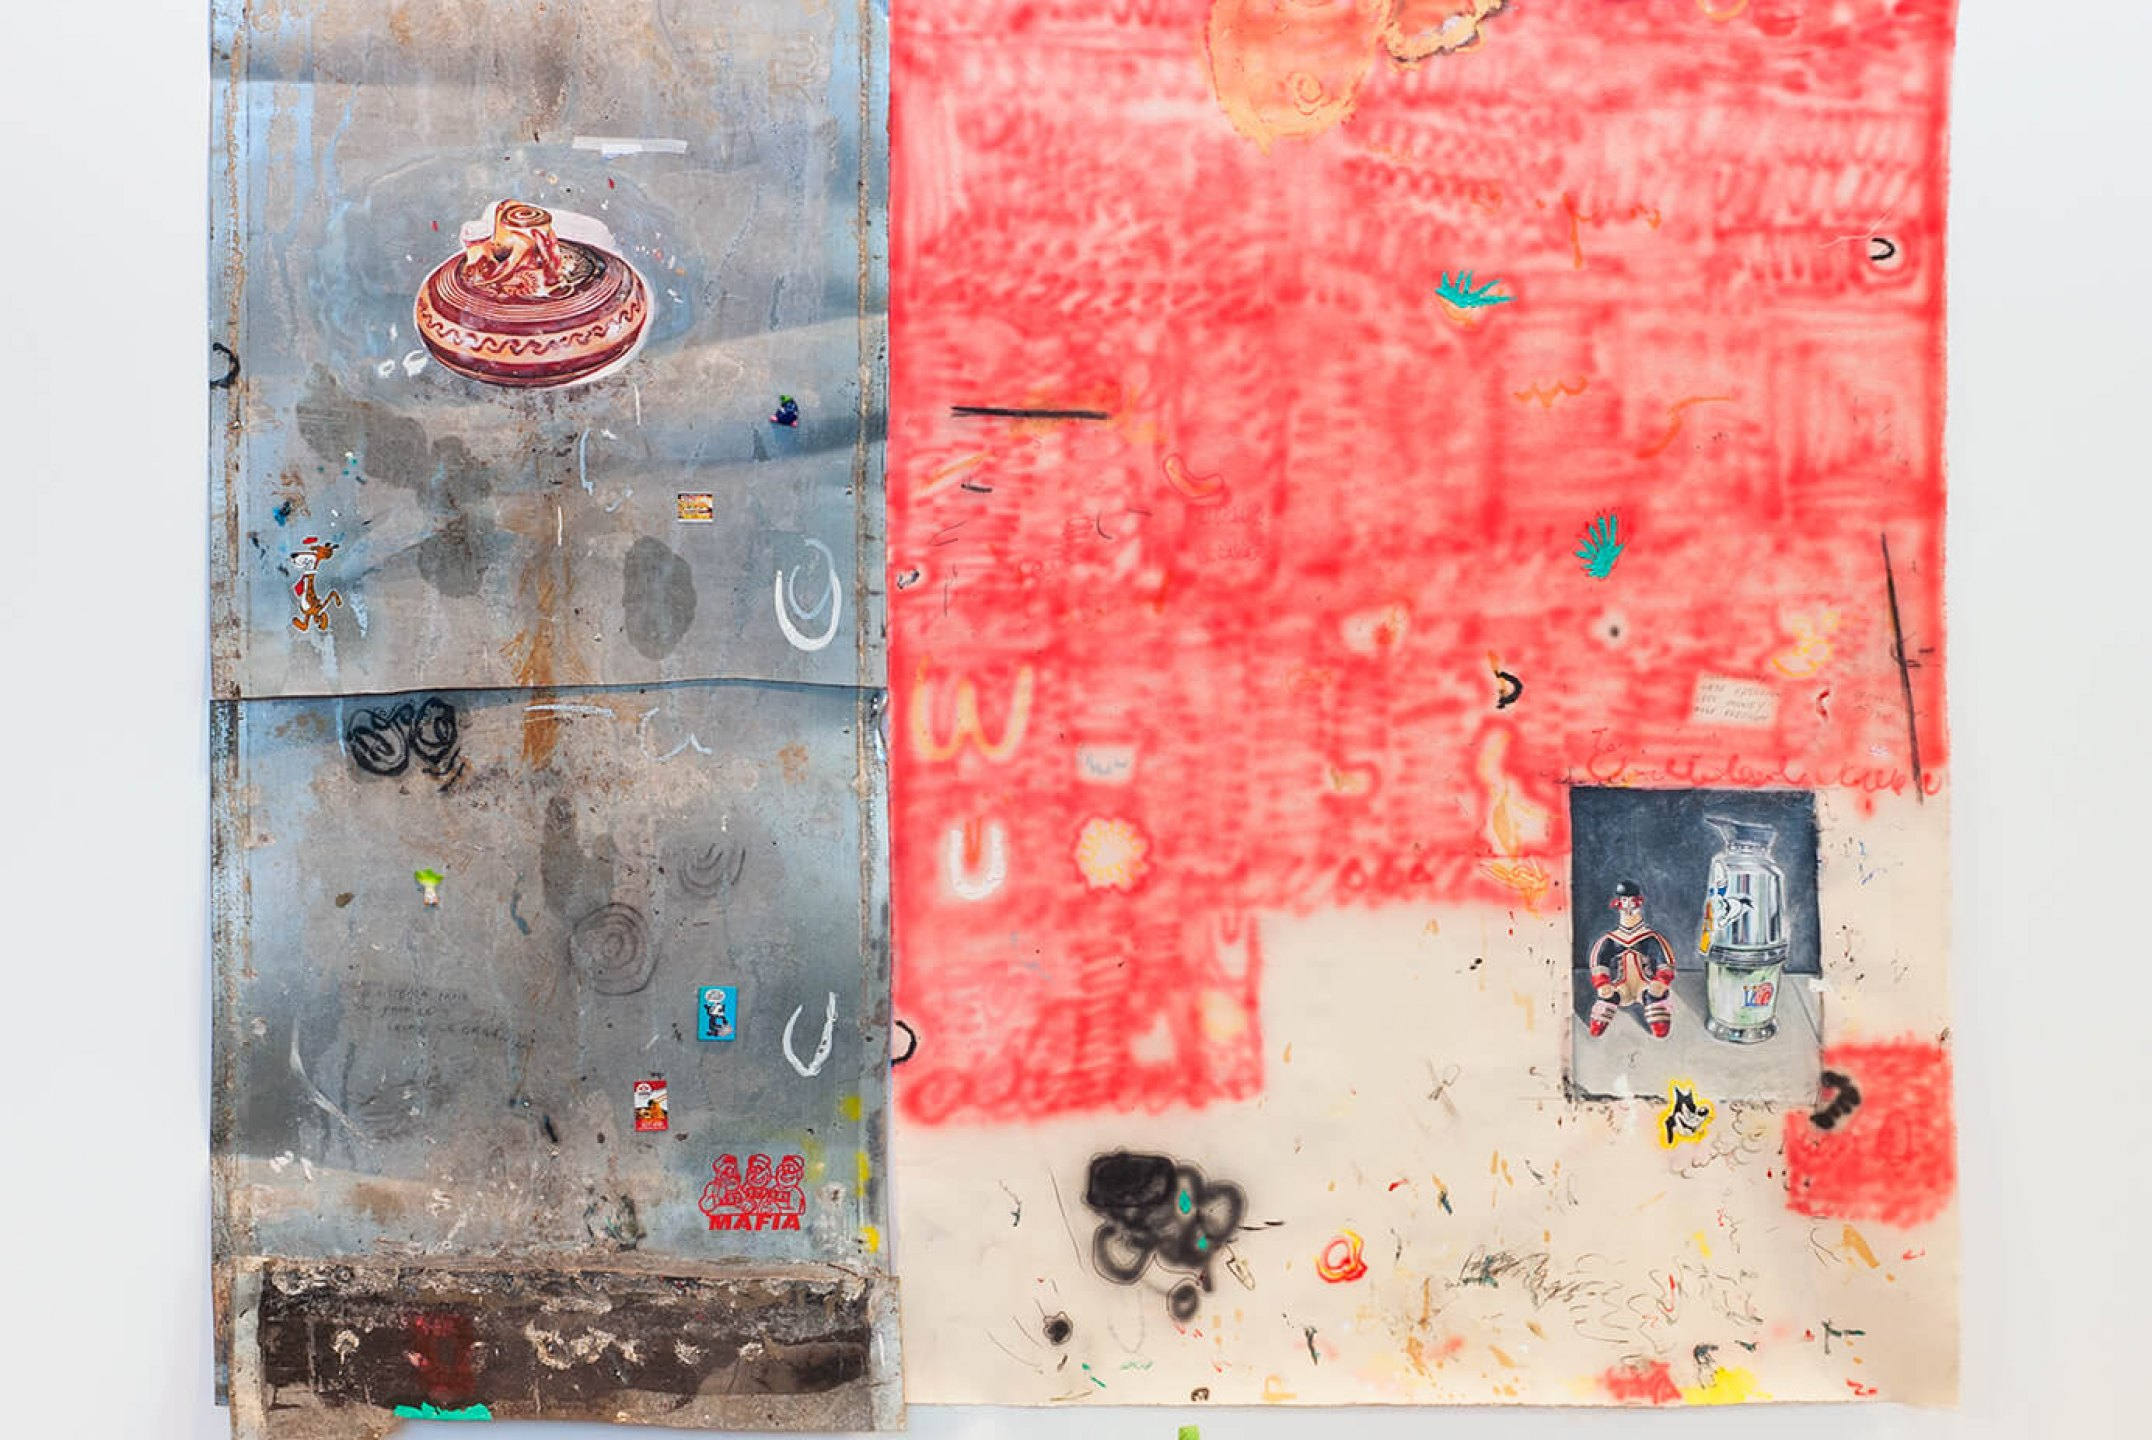 Paulo Nimer Pjota, <em>Dialogue between arrangements, constellations and time, geometric motifs and chromotherapy #2</em>, 2015, mixed media on canvas and aluminum, 216 × 257 cm - Mendes Wood DM